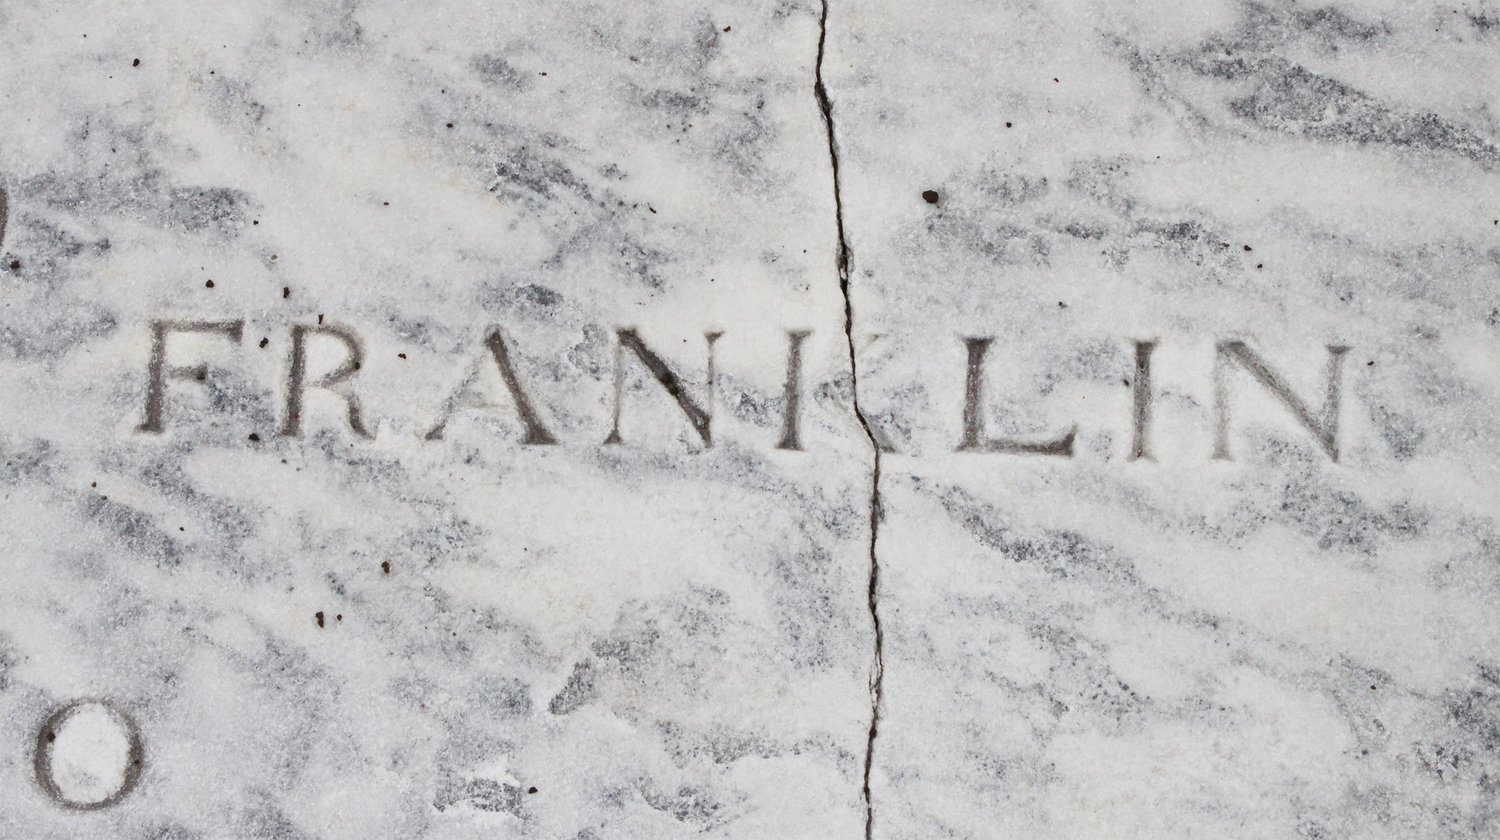 Christ Church Burial Ground & Benjamin Franklin's Grave<strong>Philadelphia, PA<br/><br/>Read More →</strong>